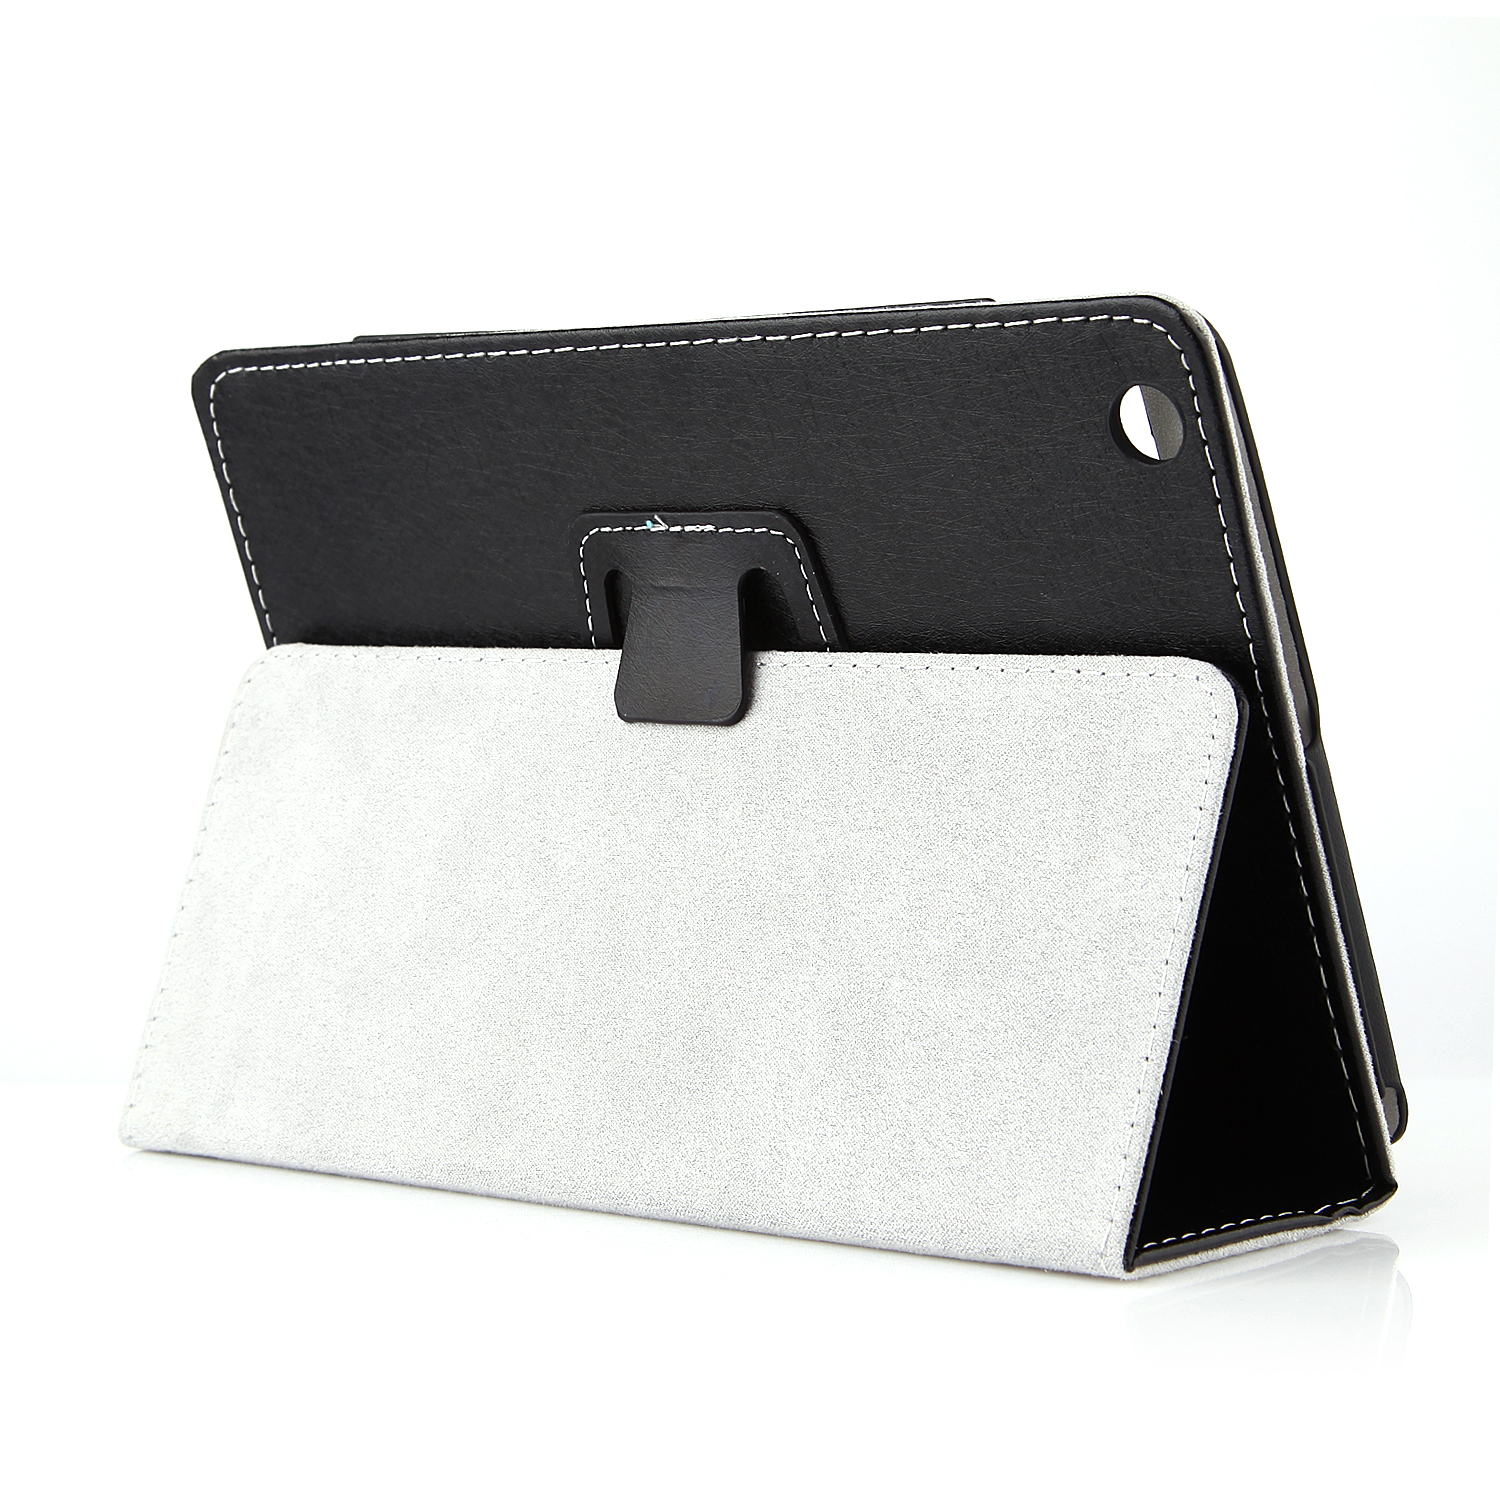 Original Silk Printing Flip Stand Leather Case Cover for FNF ifive mini3 3G Tablet PC